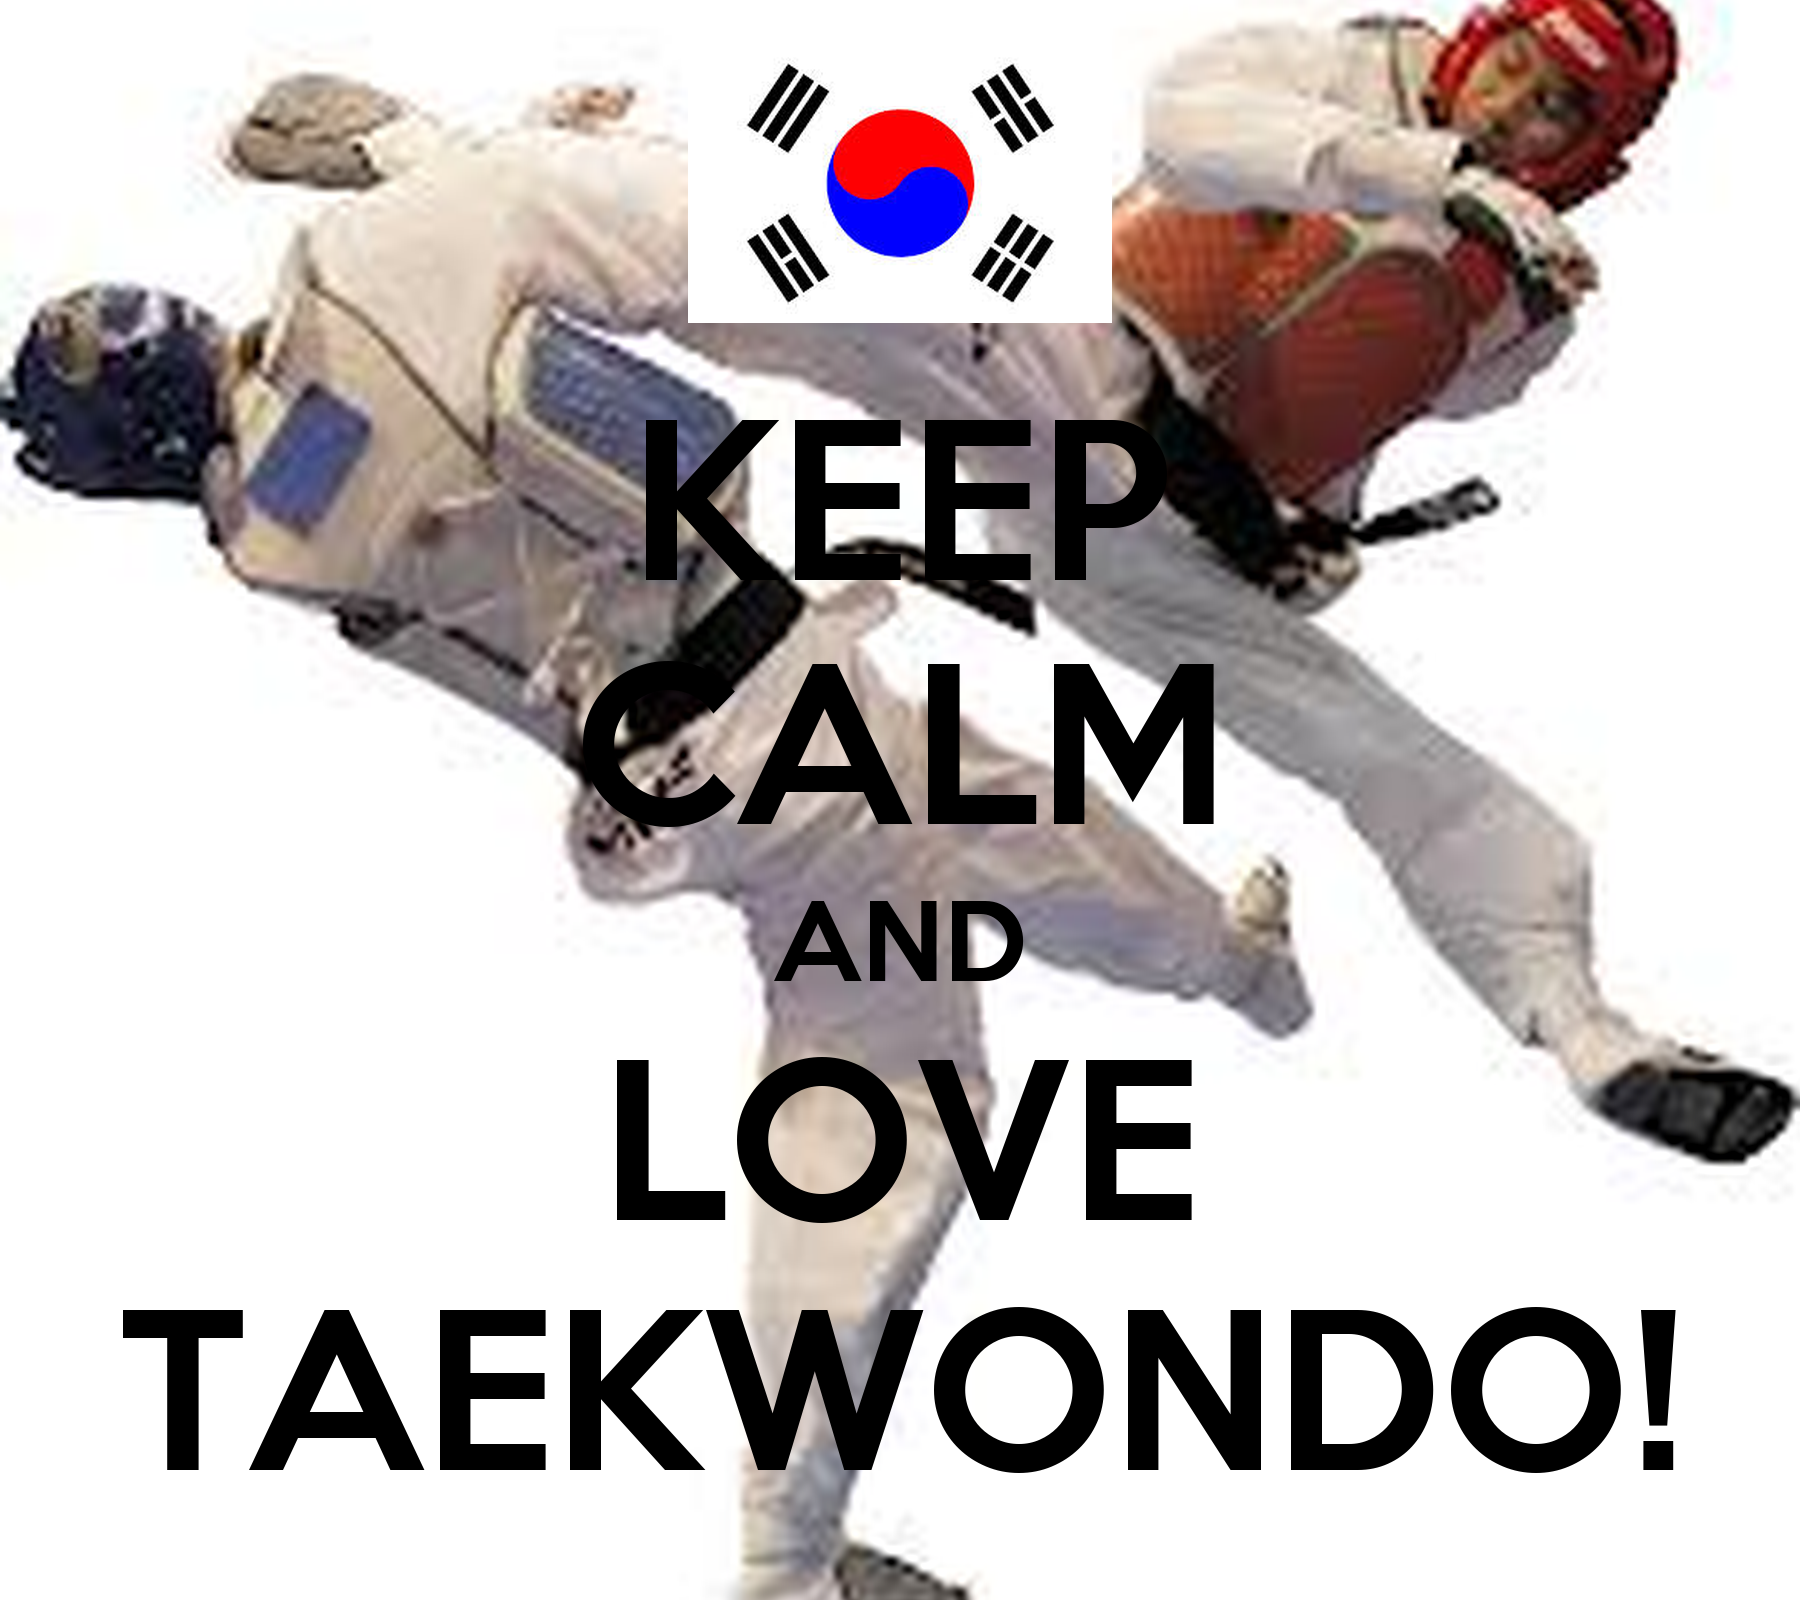 Iphone wallpaper keep calm - Taekwondo Wallpaper Iphone Viewing Gallery